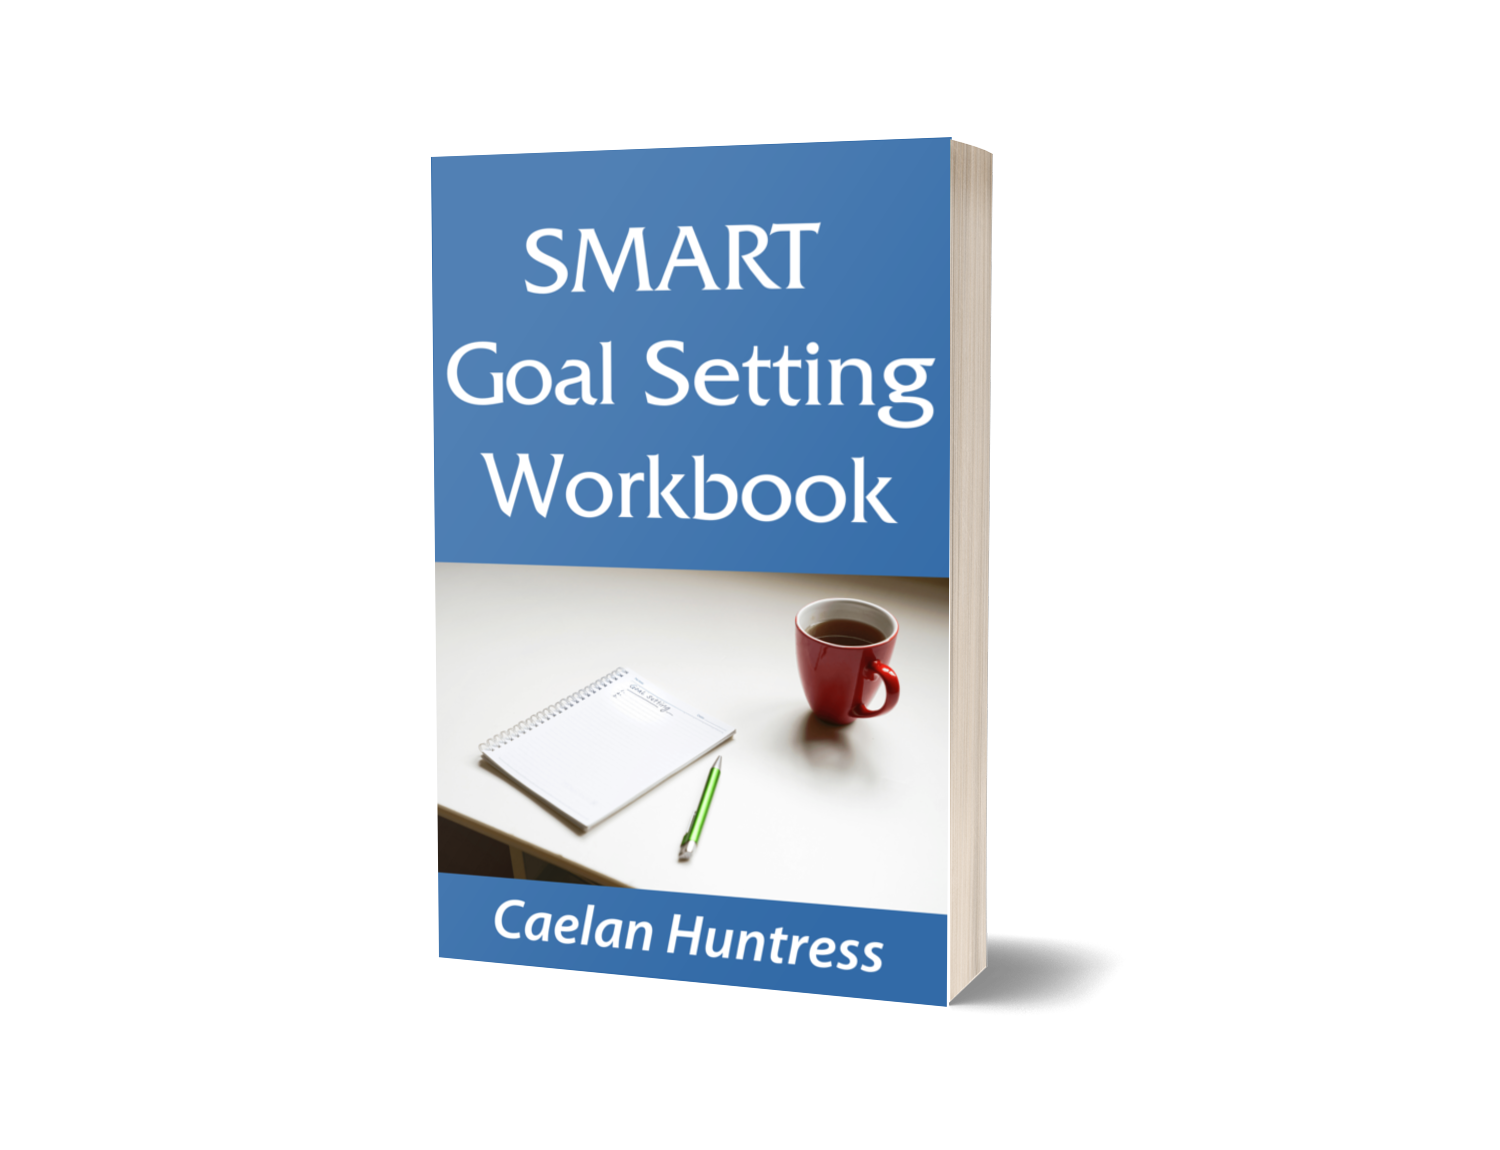 SMART goal setting workbook